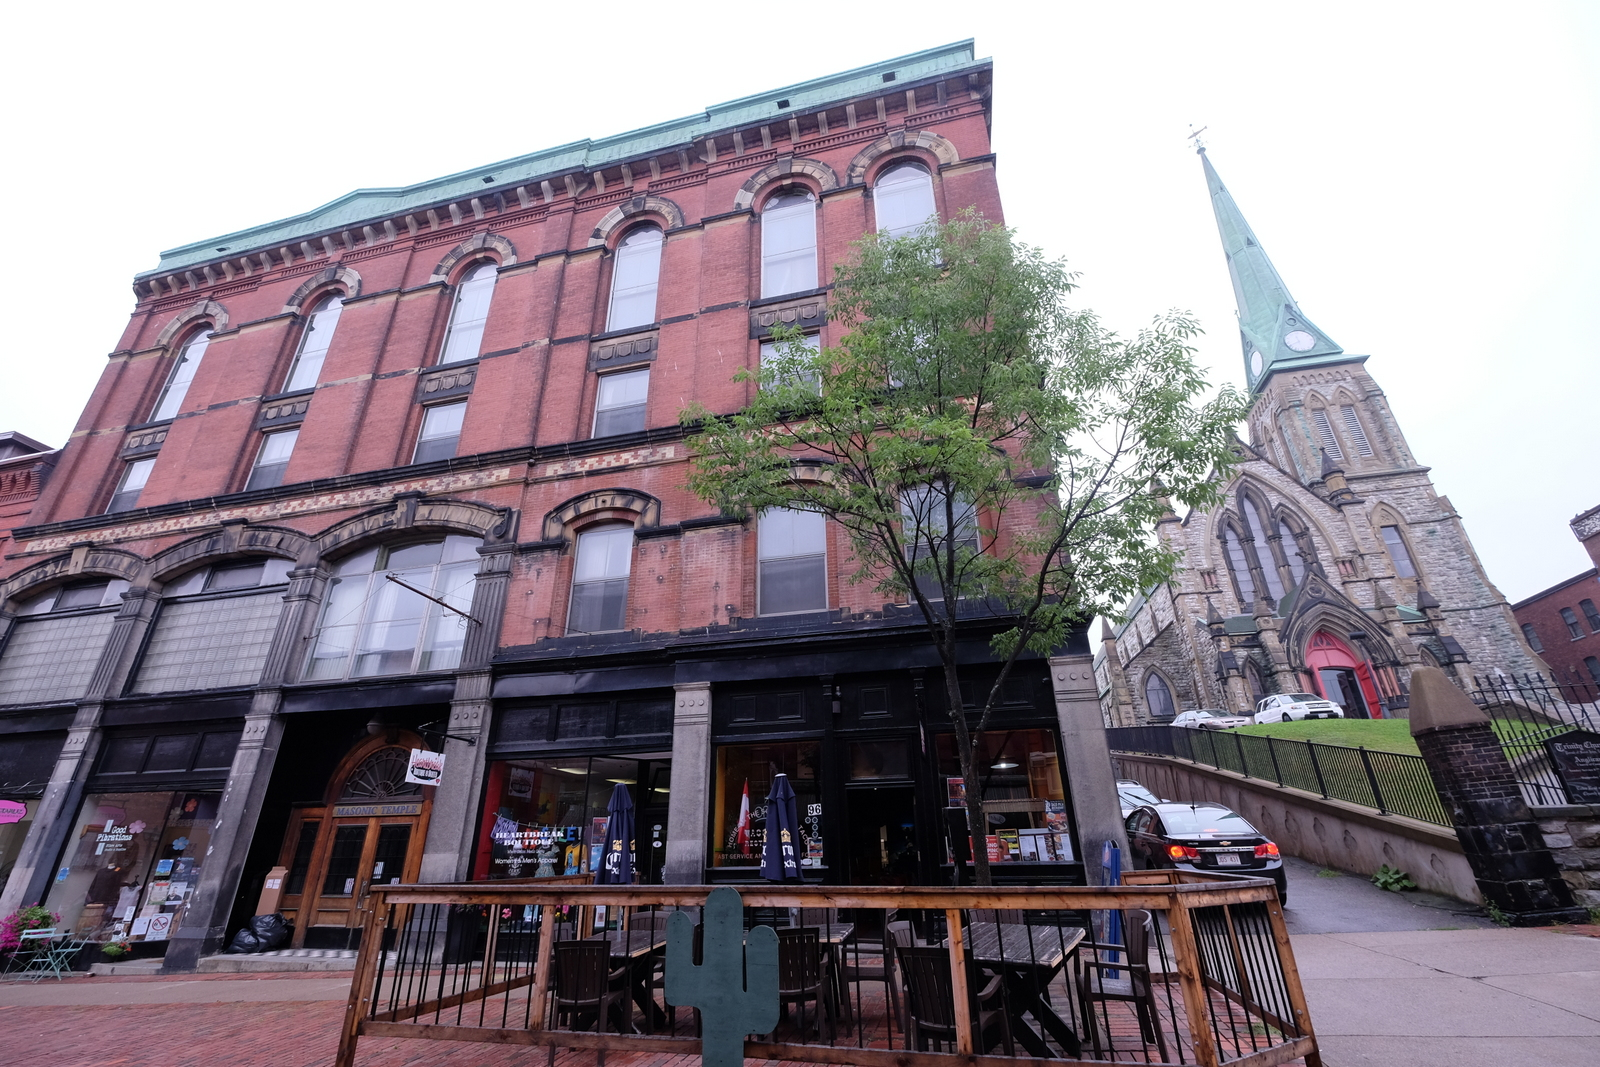 Saint John, New Brunswick has a ton of cool, old-style architecture.  - JIM BYERS PHOTO